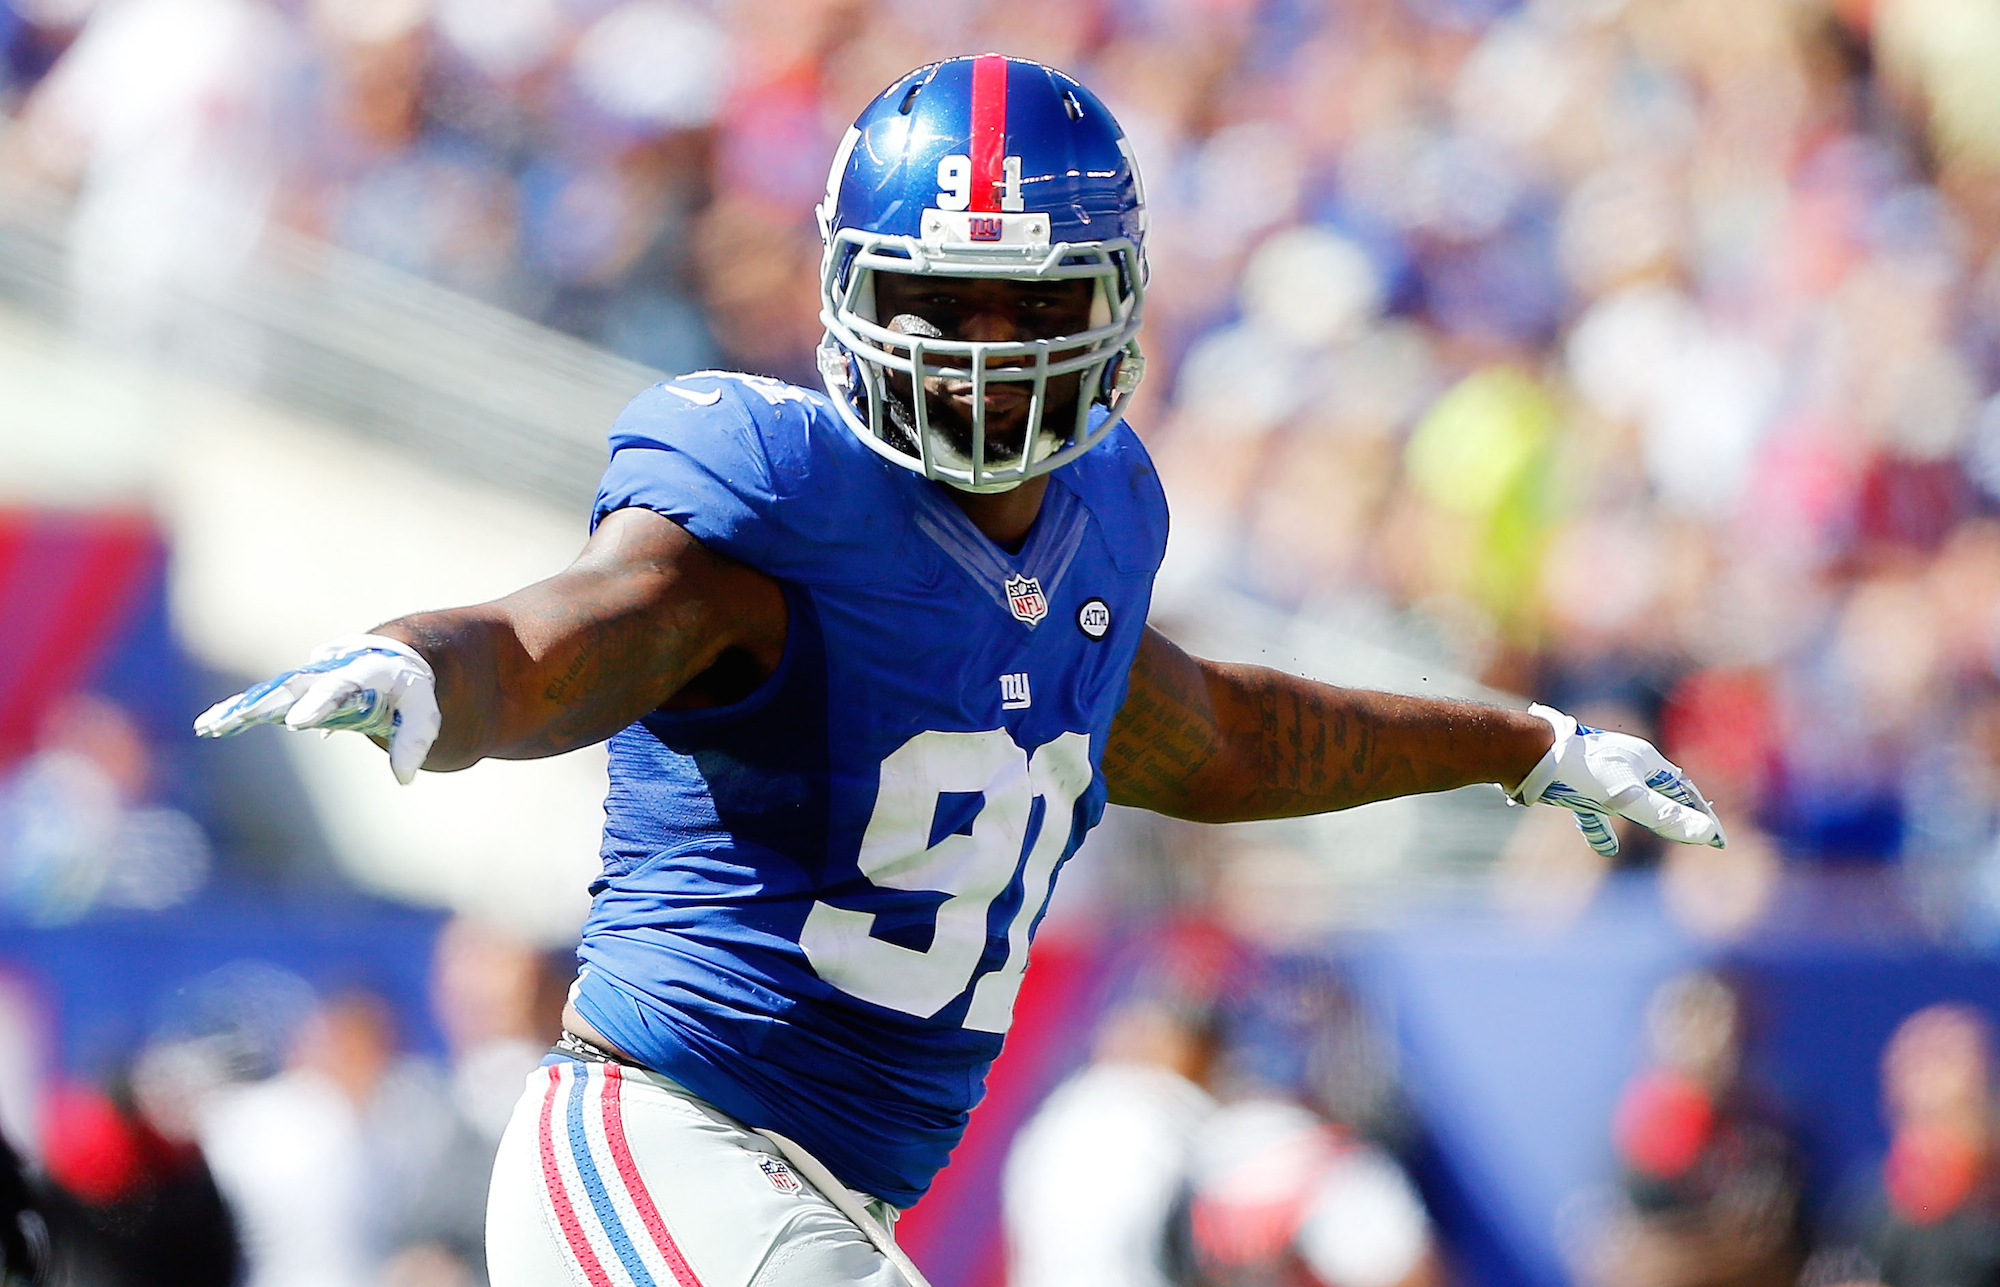 nfl New York Giants Robert Ayers LIMITED Jerseys